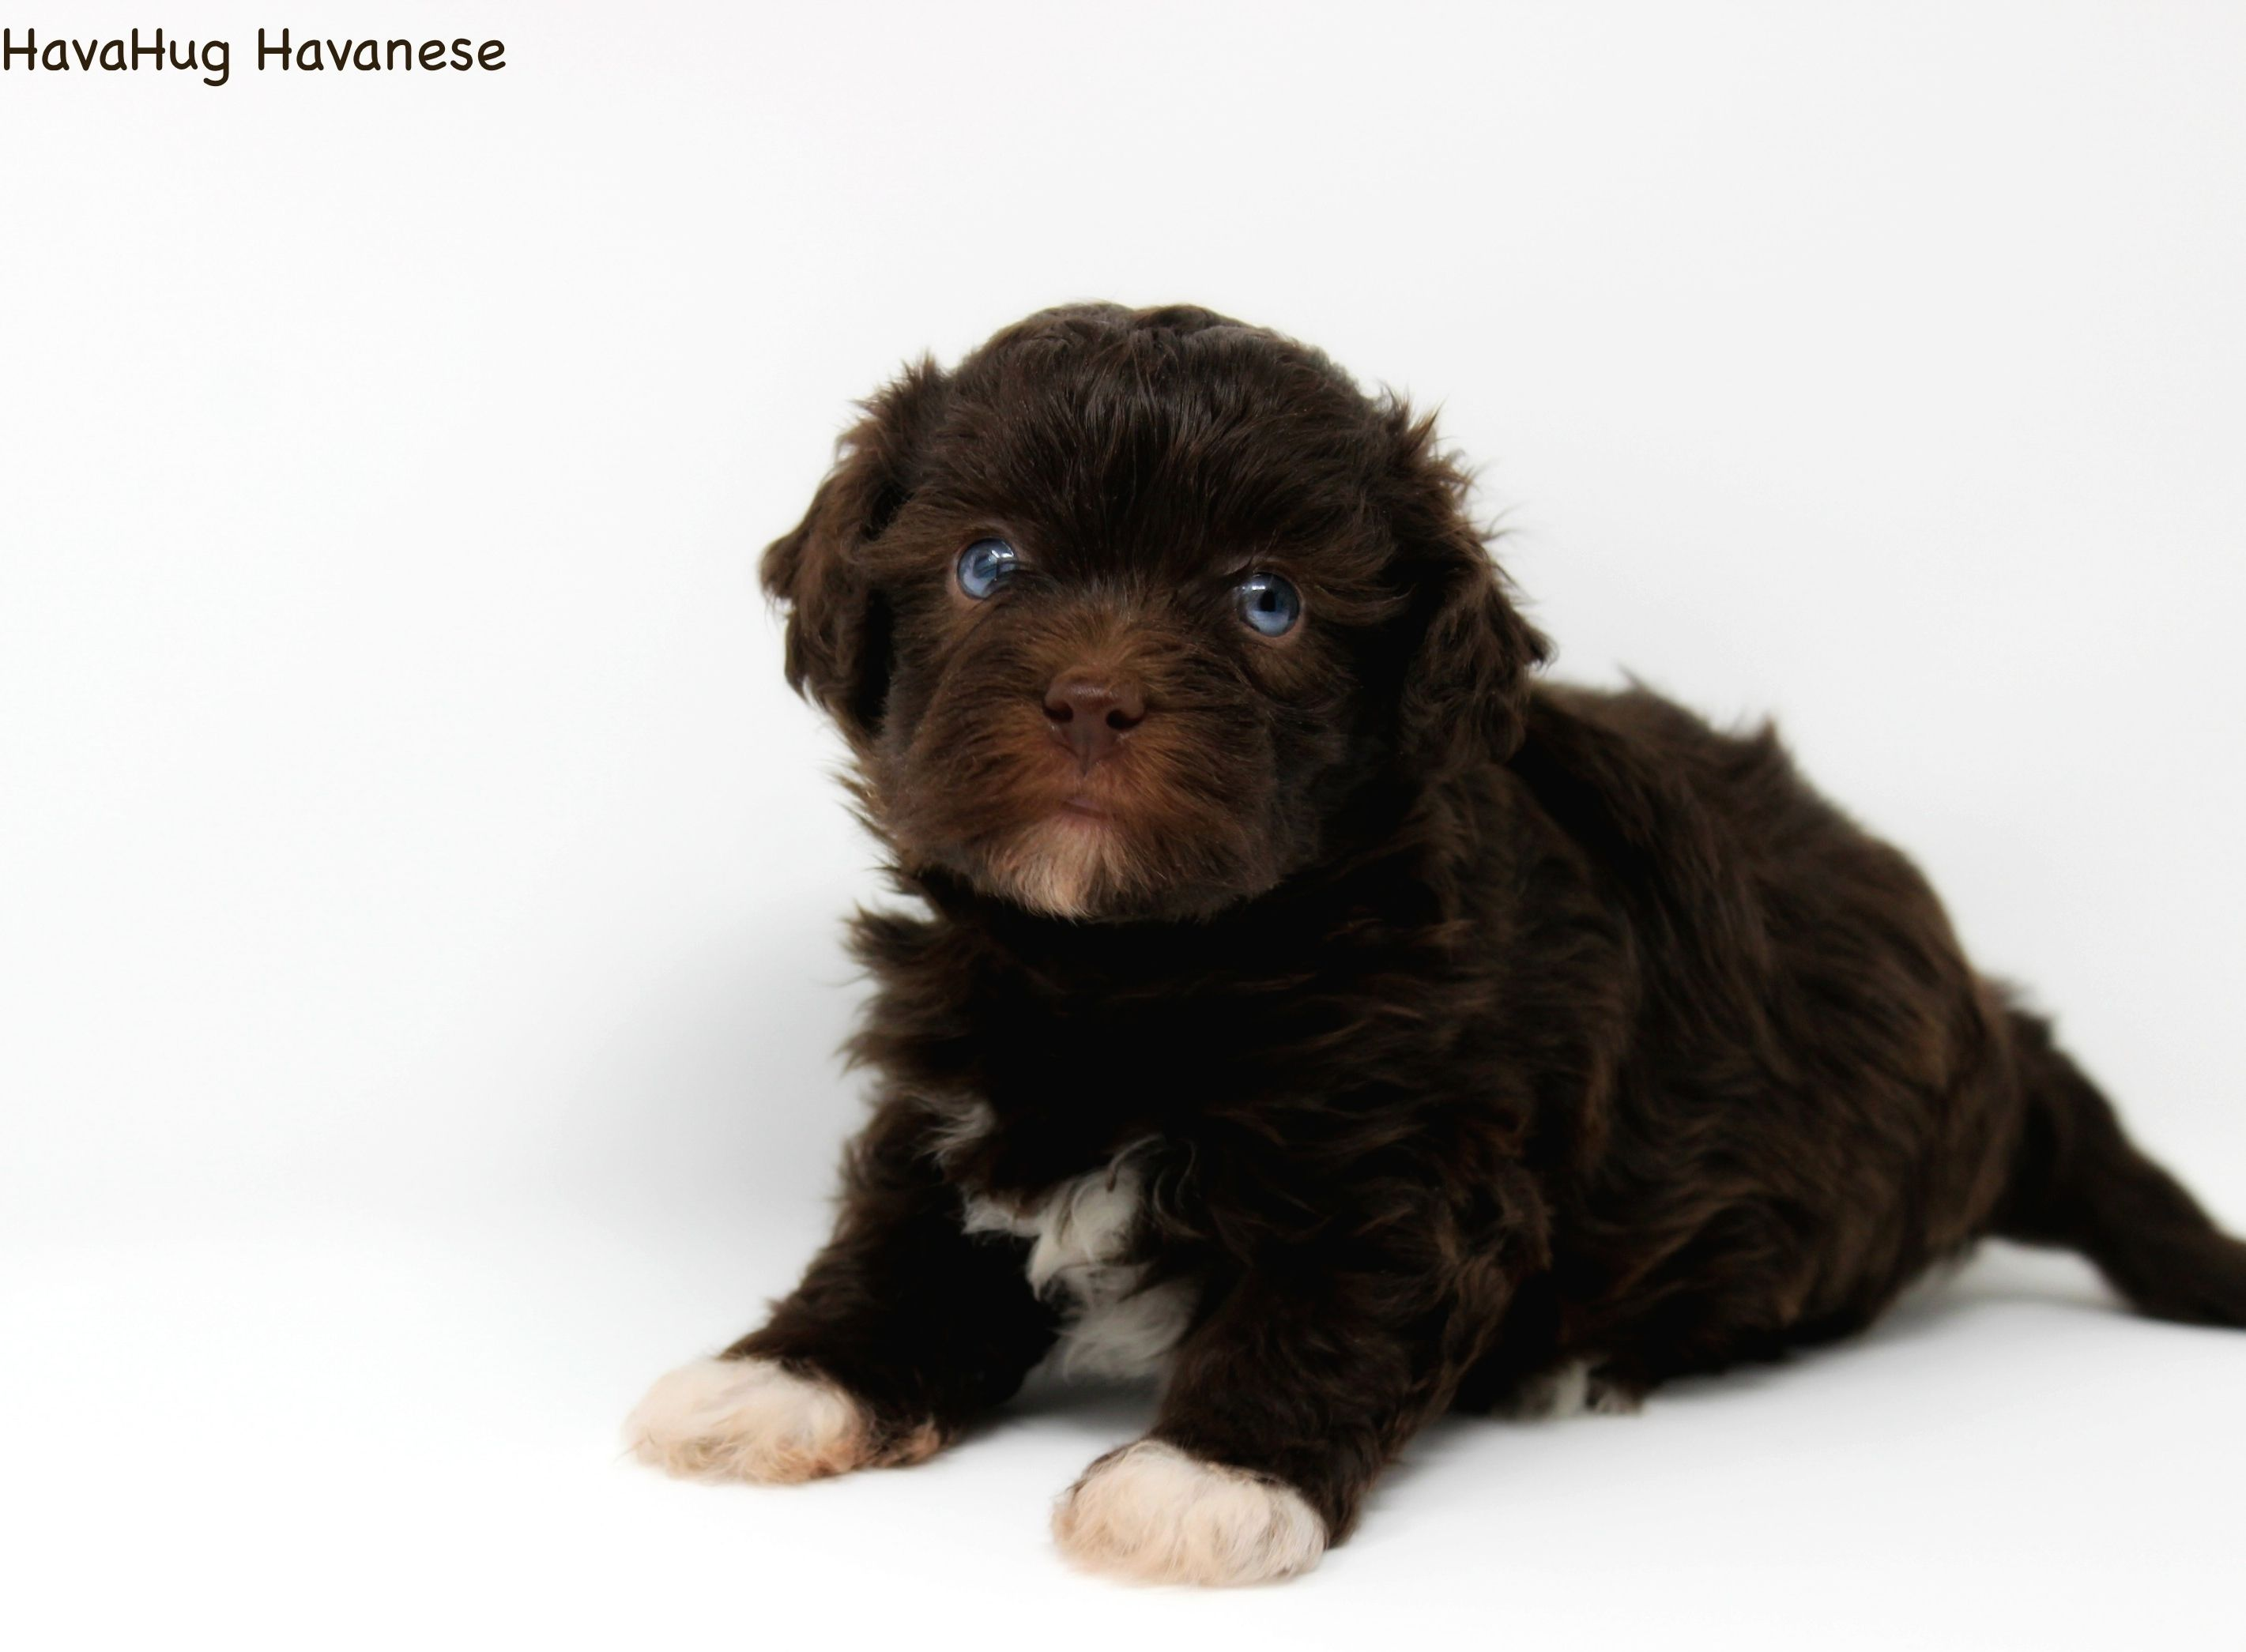 The world's most precious chocolate havanese puppies